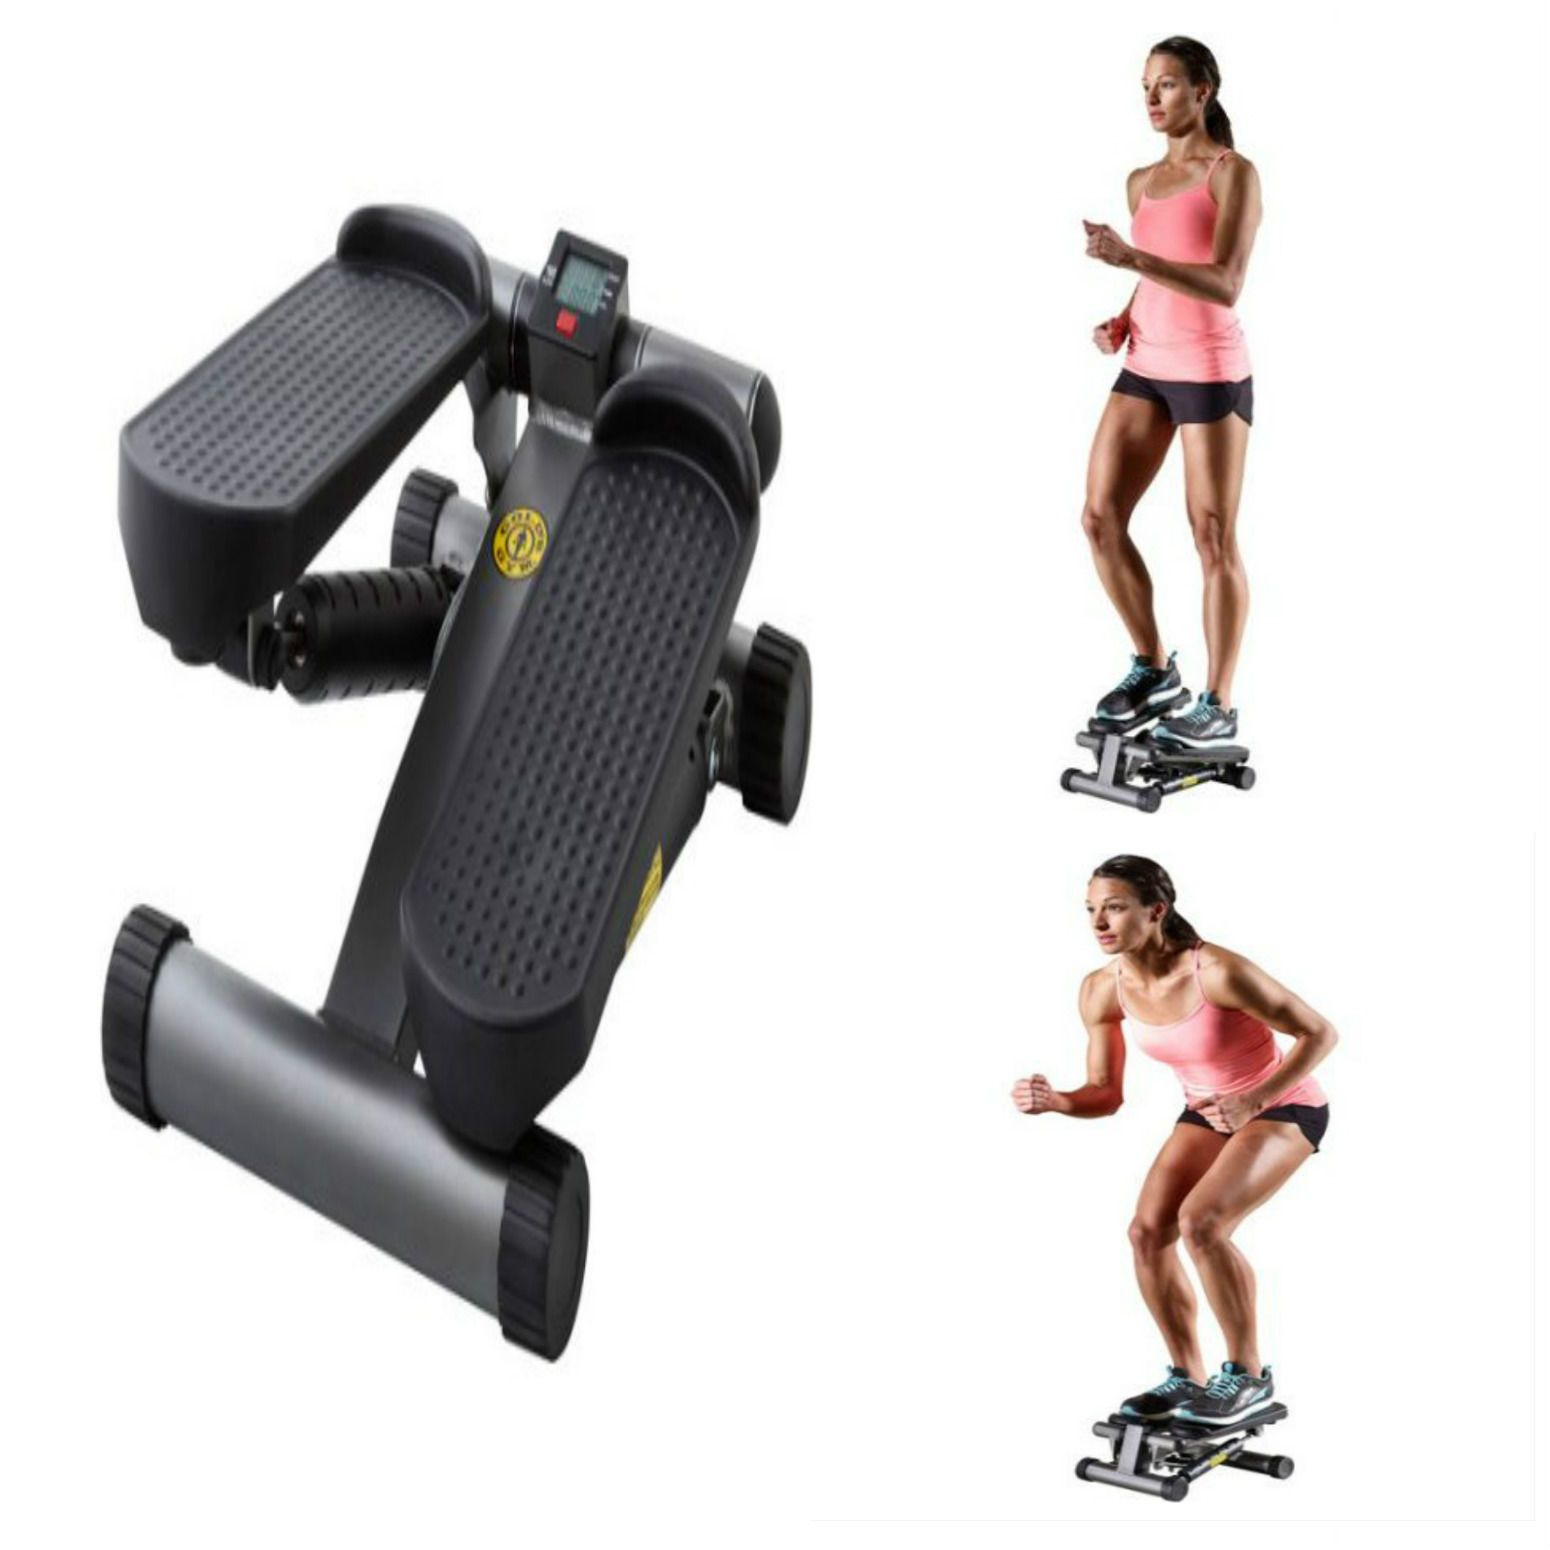 Gold S Gym Home Mini Stepper Workout Exercise Body Fitness Toner Display Monitor Stepper Workout Fitness Body Exercise